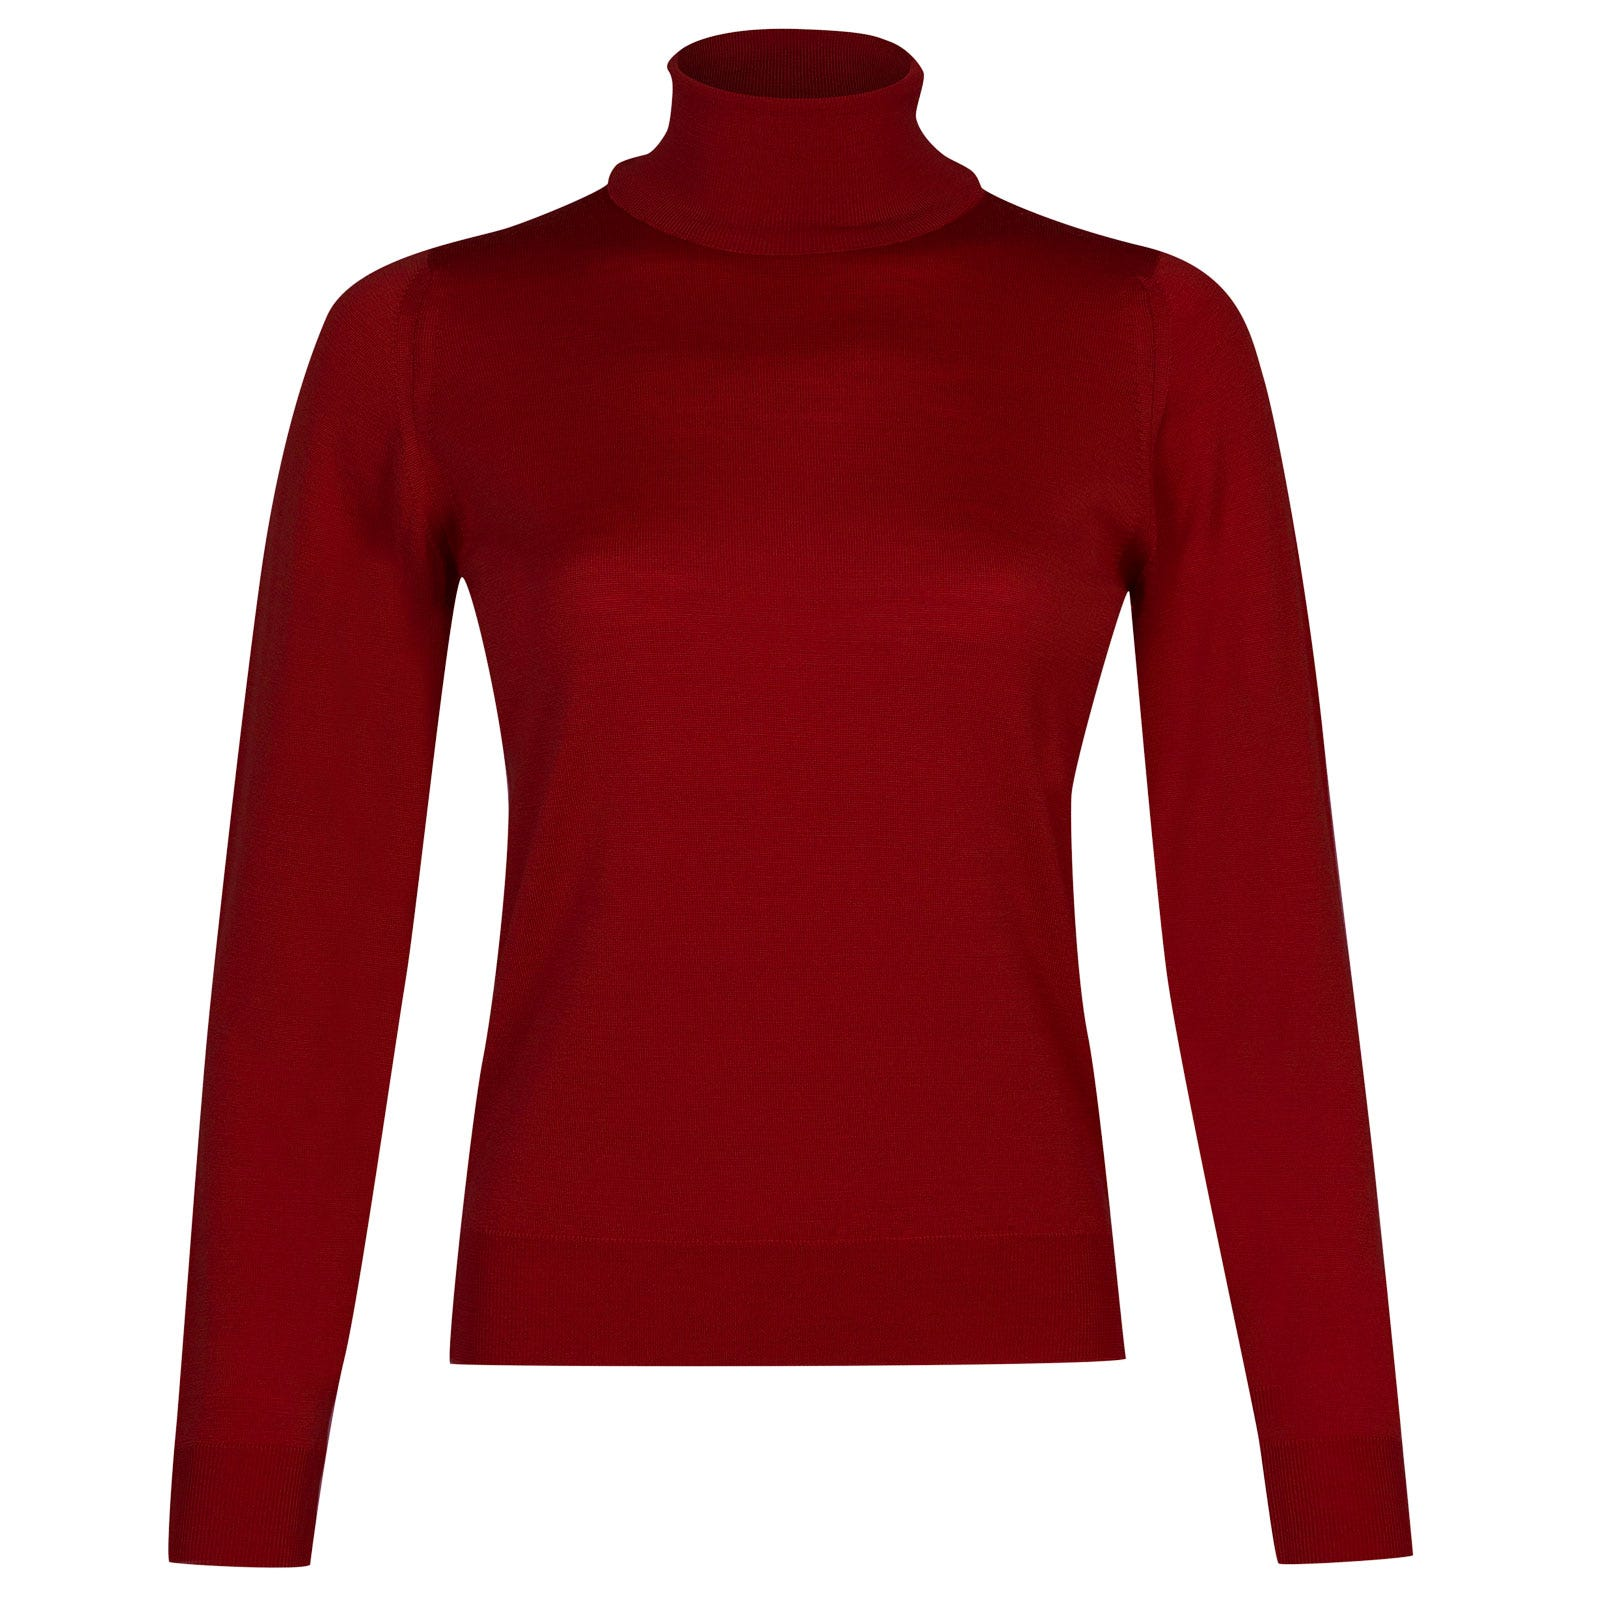 John Smedley siena Merino Wool Sweater in Crimson Forest-M